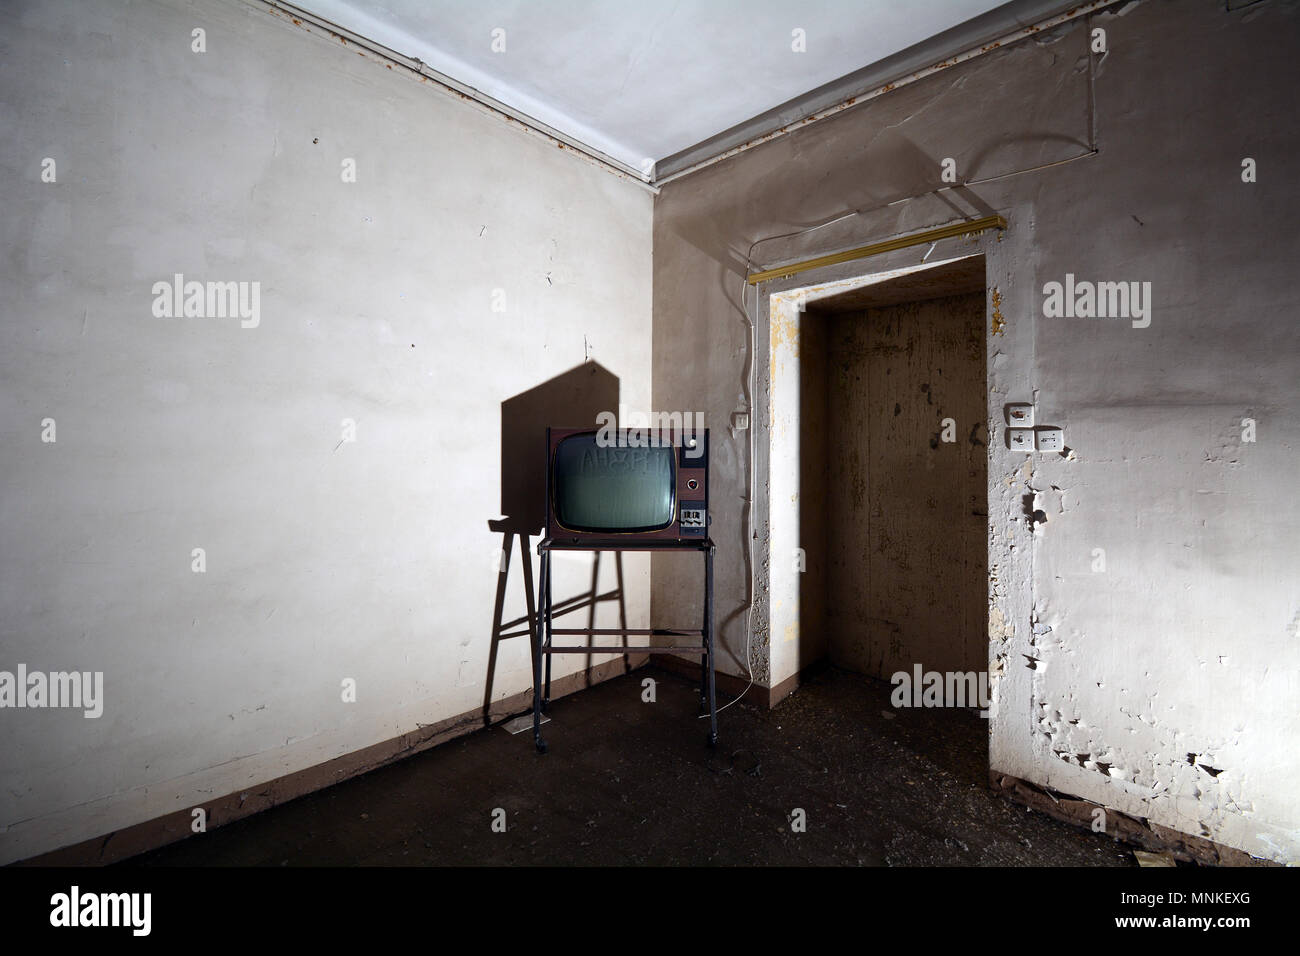 Vintage Television in Corner of Room in an Abandoned Italian Psychiatric Hospital Building - Stock Image